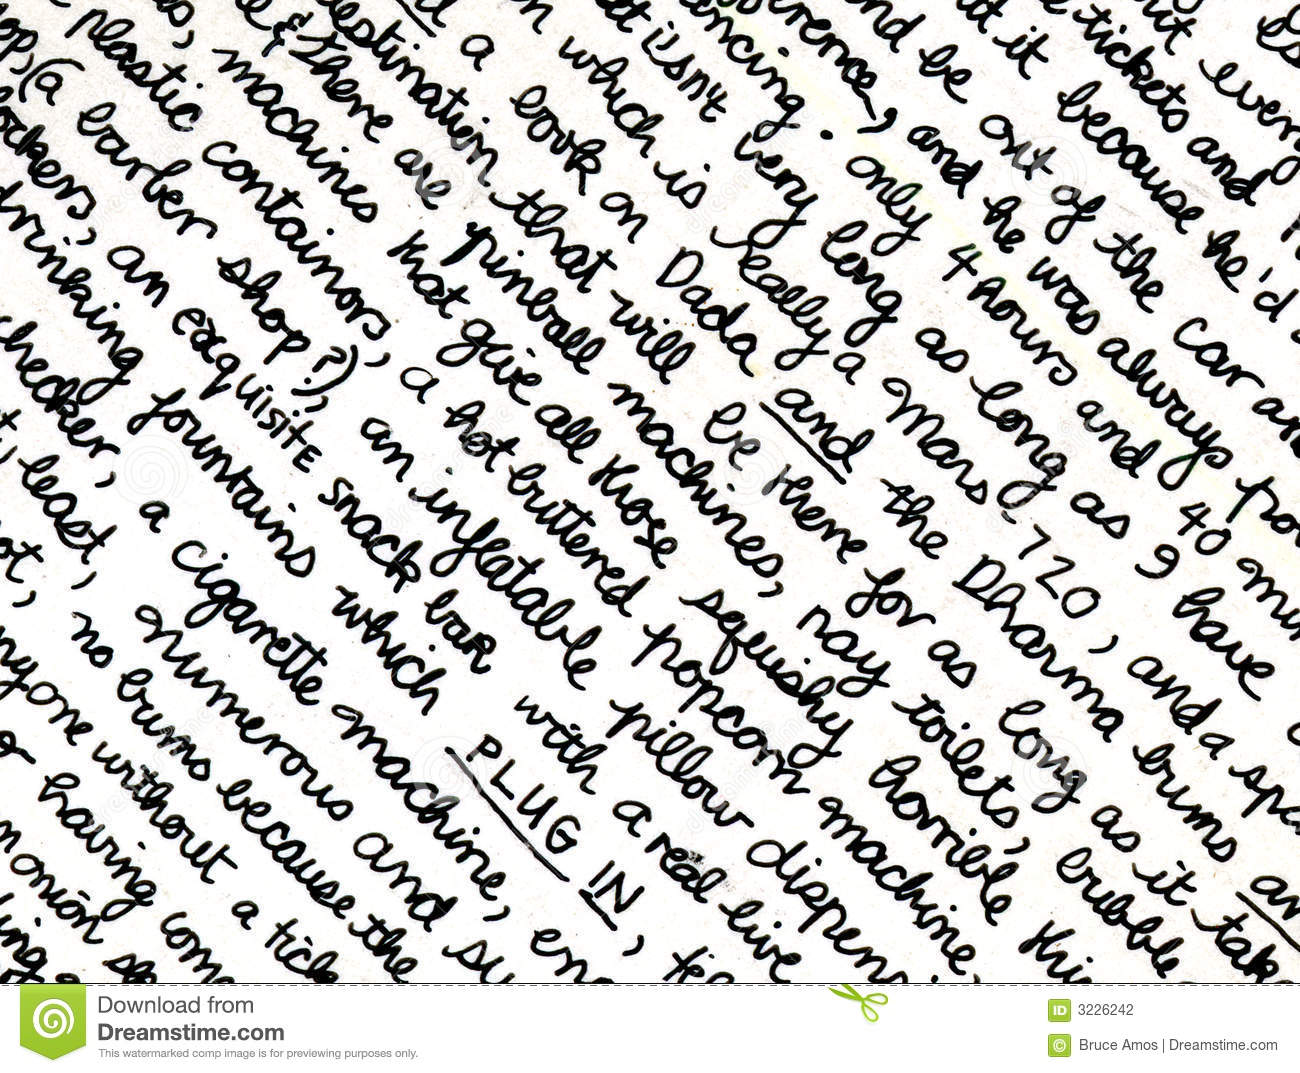 term papers on handwriting